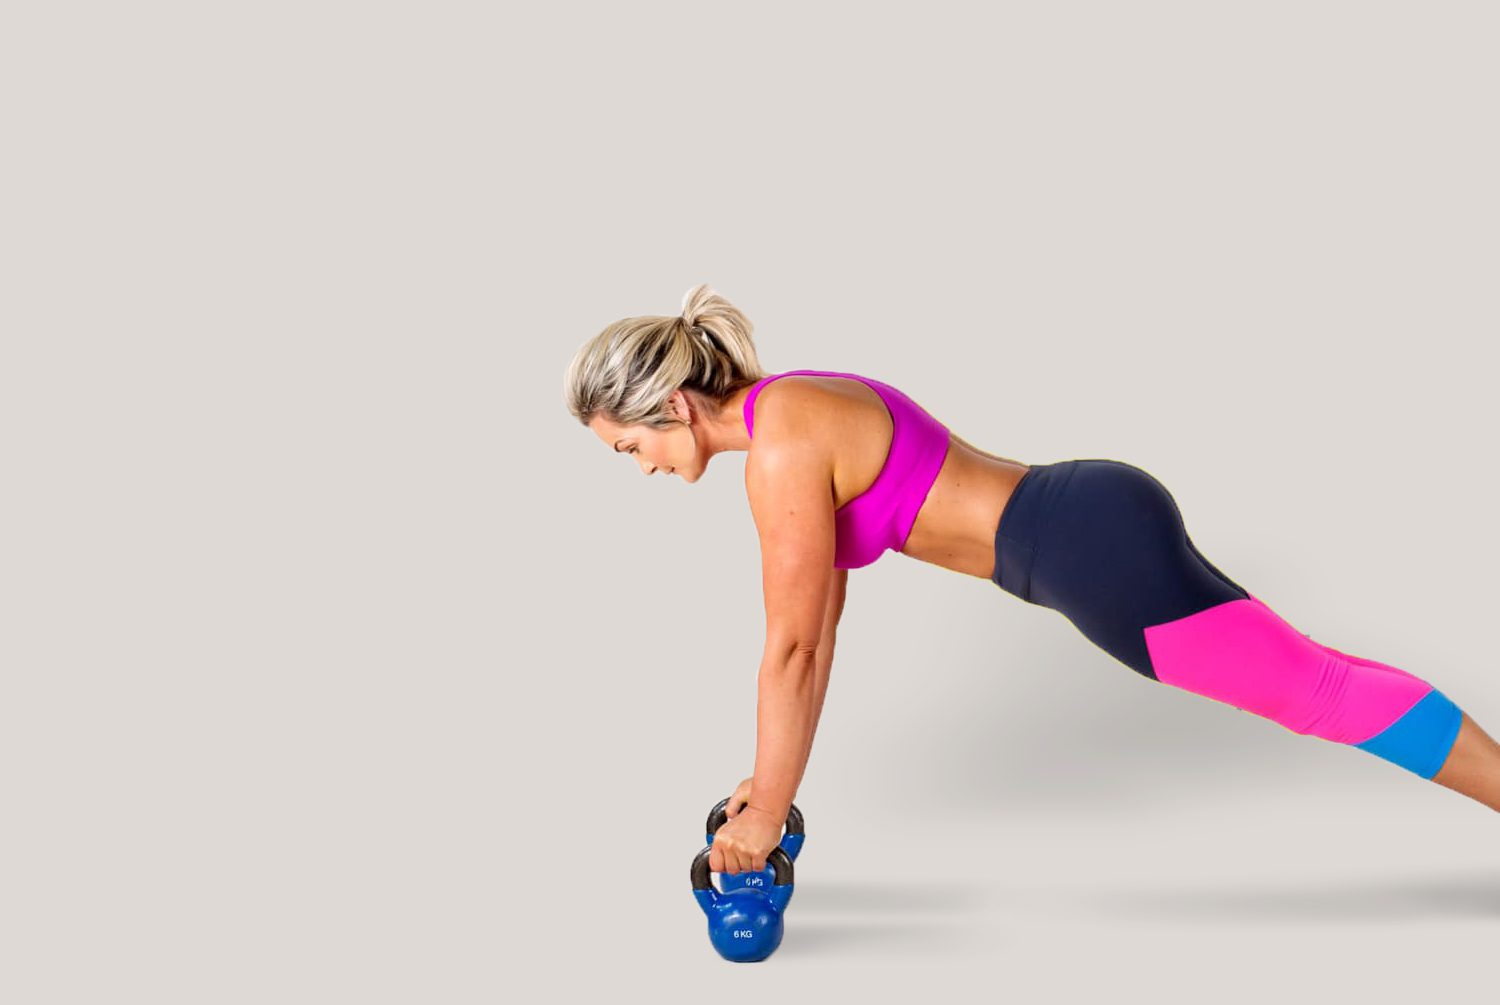 Image link to The 28 Day Bootcamp with Tara Grimes Fitness